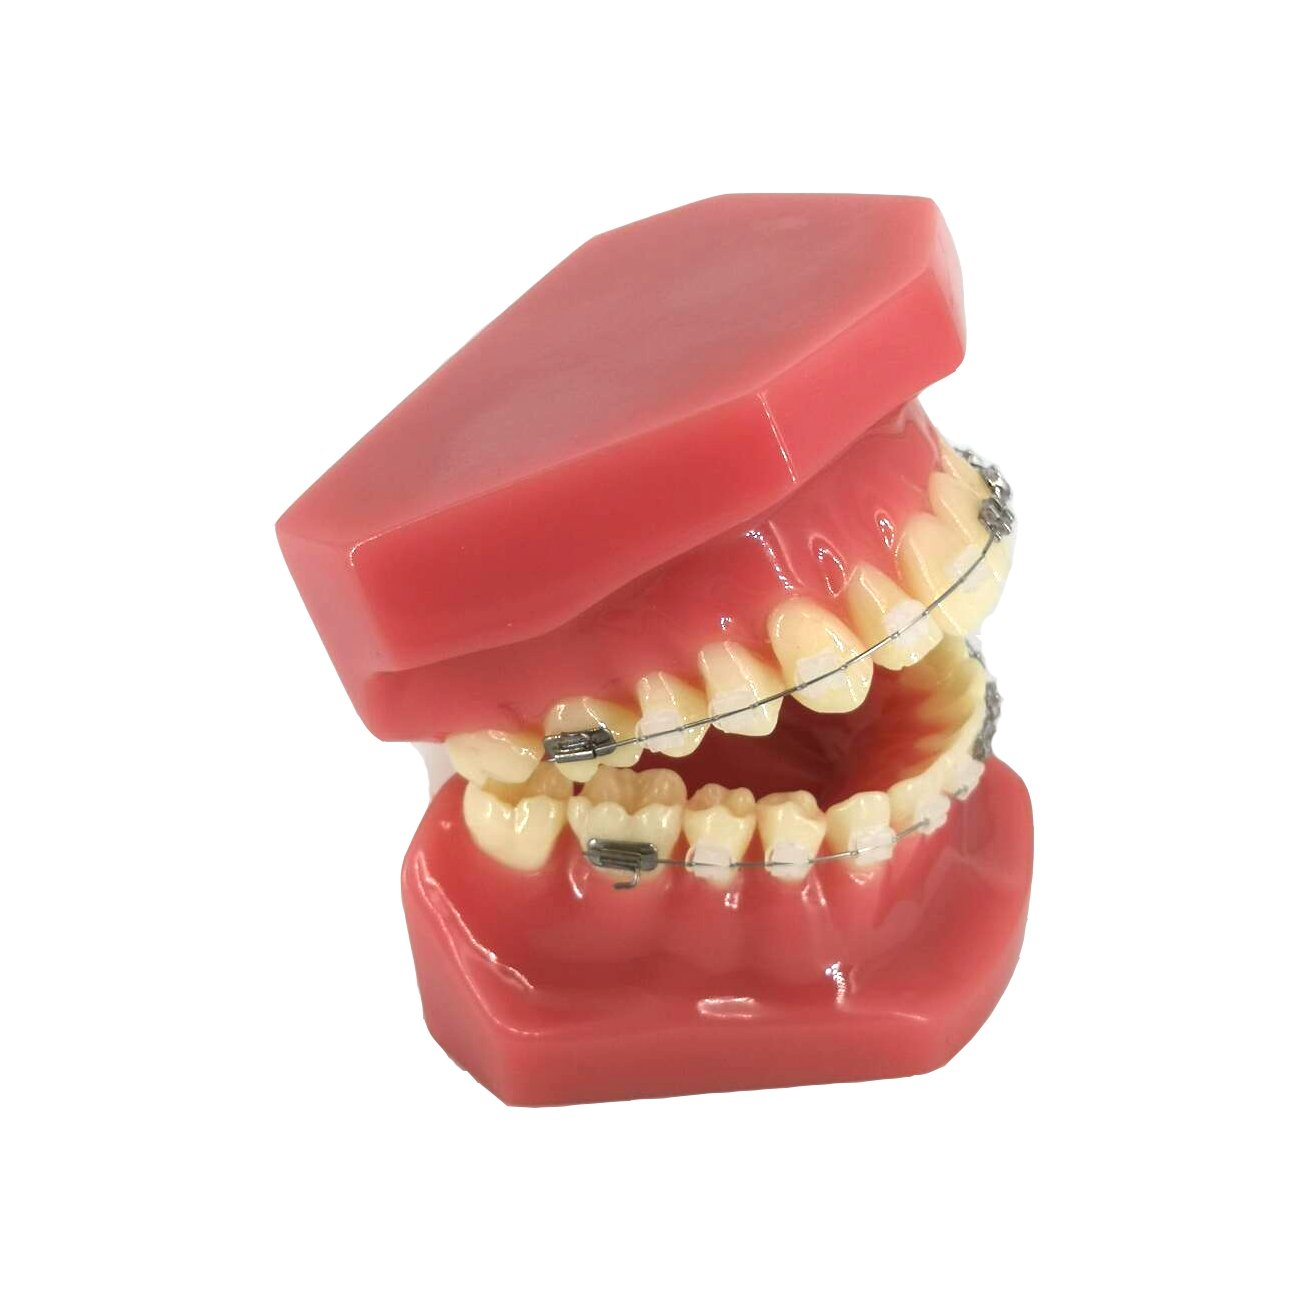 YOUYA Dental TM-208 Demonstration Orthodontic Model Teeth Teach Study Tools with Metal and Ceramic Bracket(Red) by YOUYA DENTAL (Image #2)